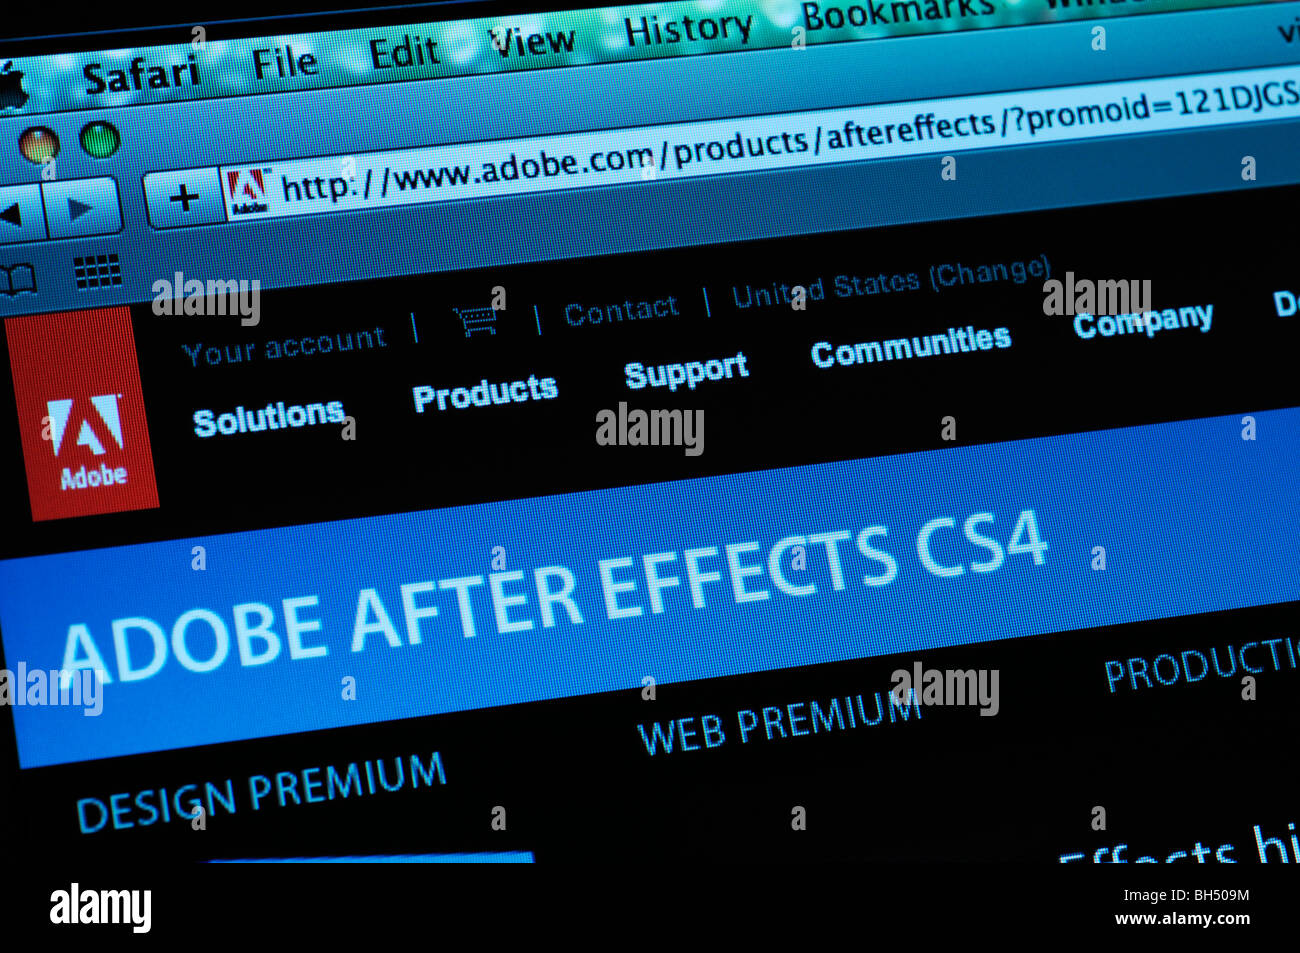 after effects website